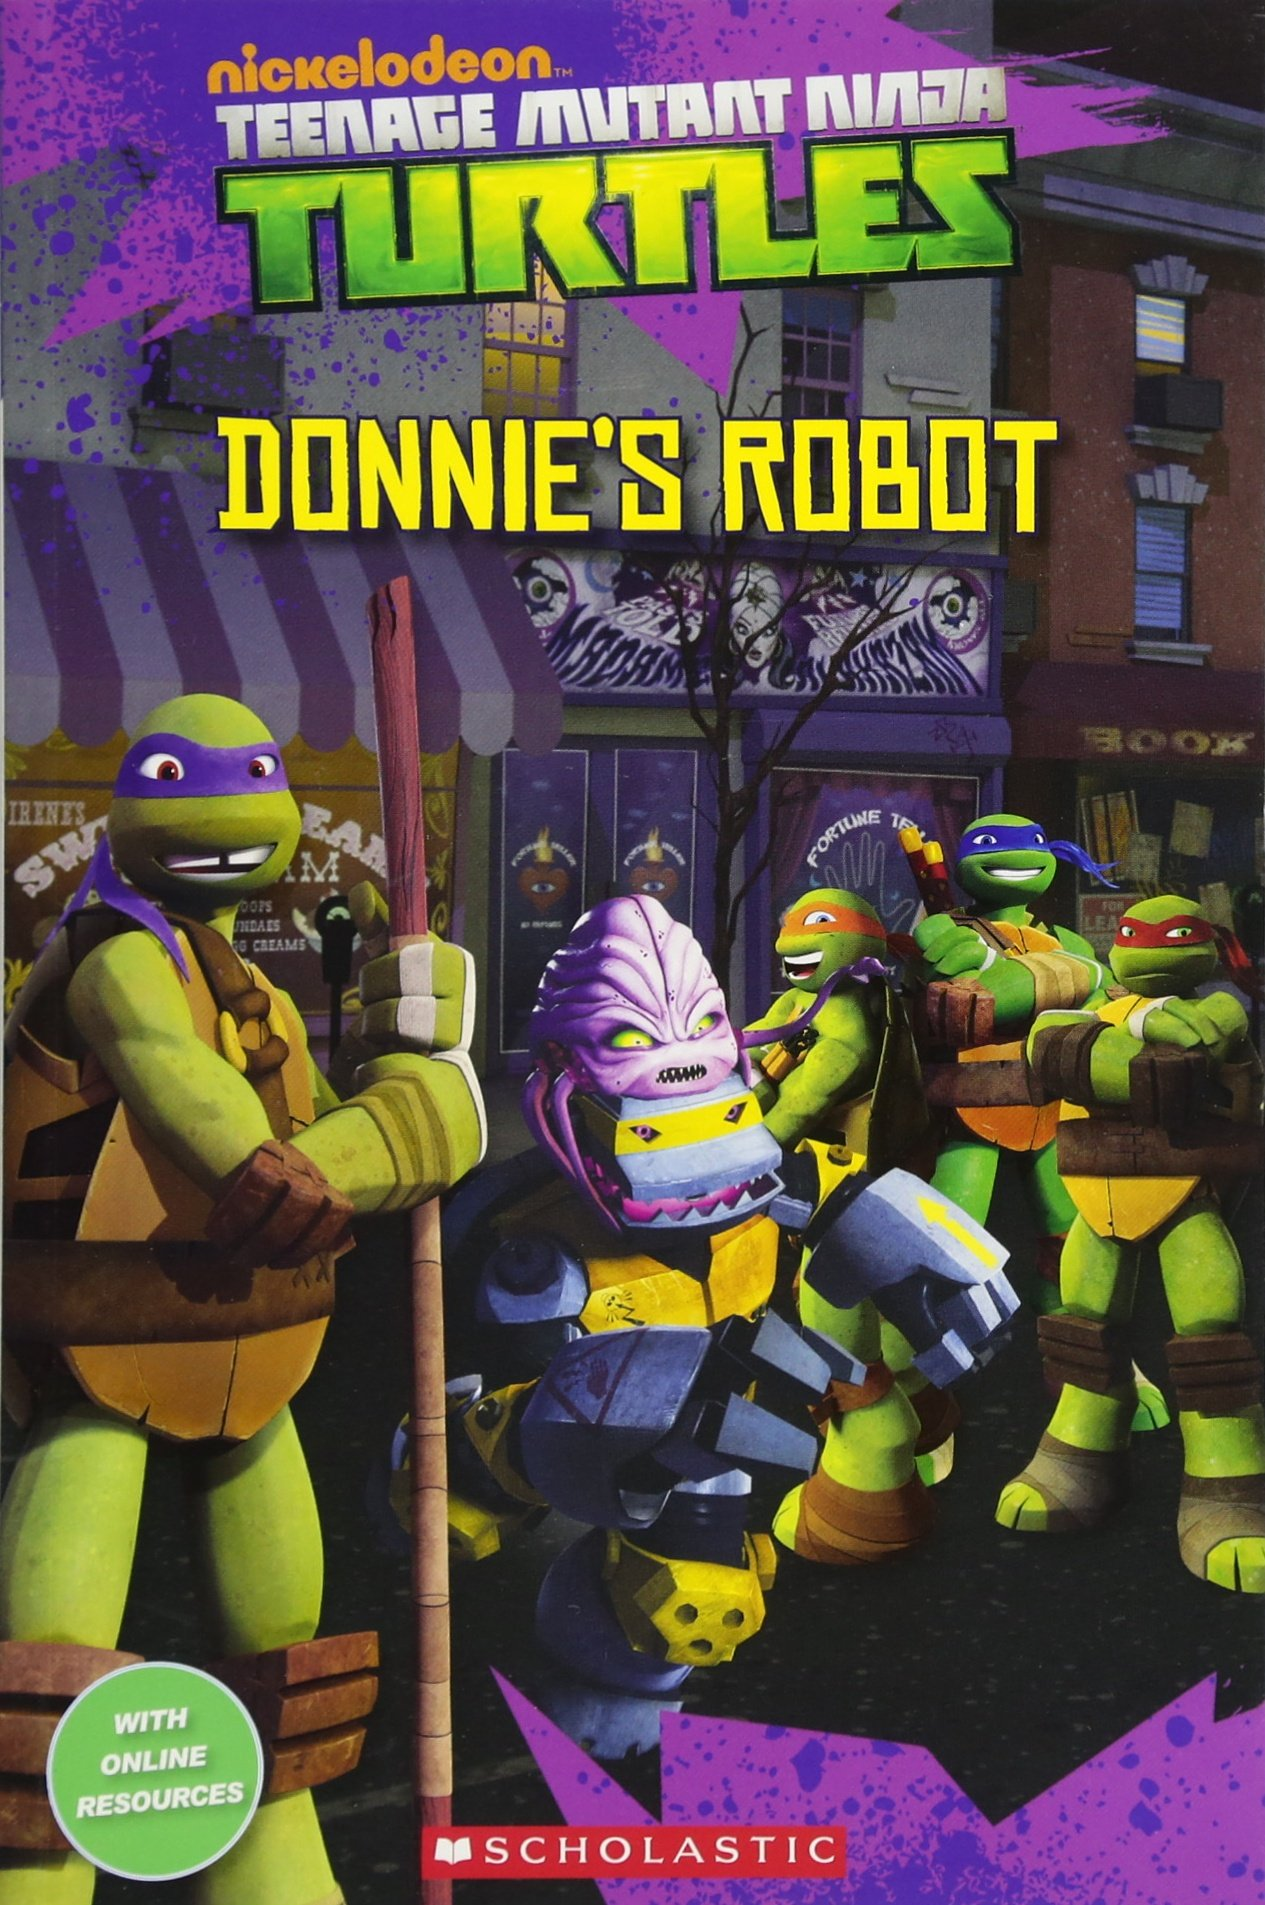 Teenage Mutant Ninja Turtles: Donnies Robot Popcorn Readers ...